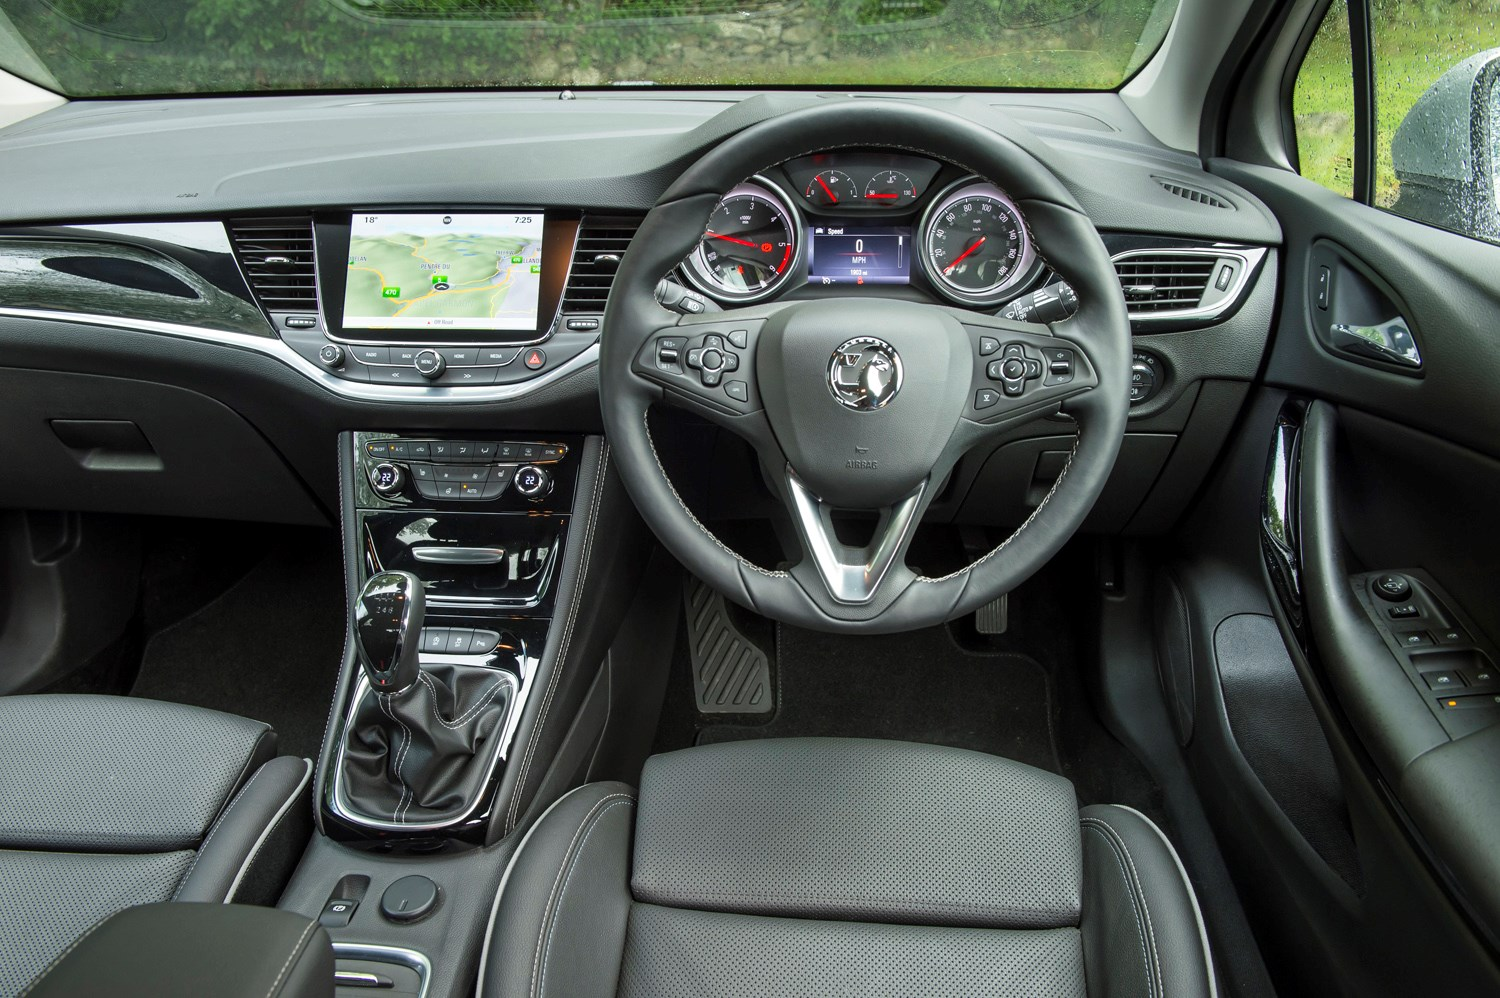 amazing-design-of-the-black-leather-steering-wheel-vauxhall-astra-sports-tourer-2016-interior